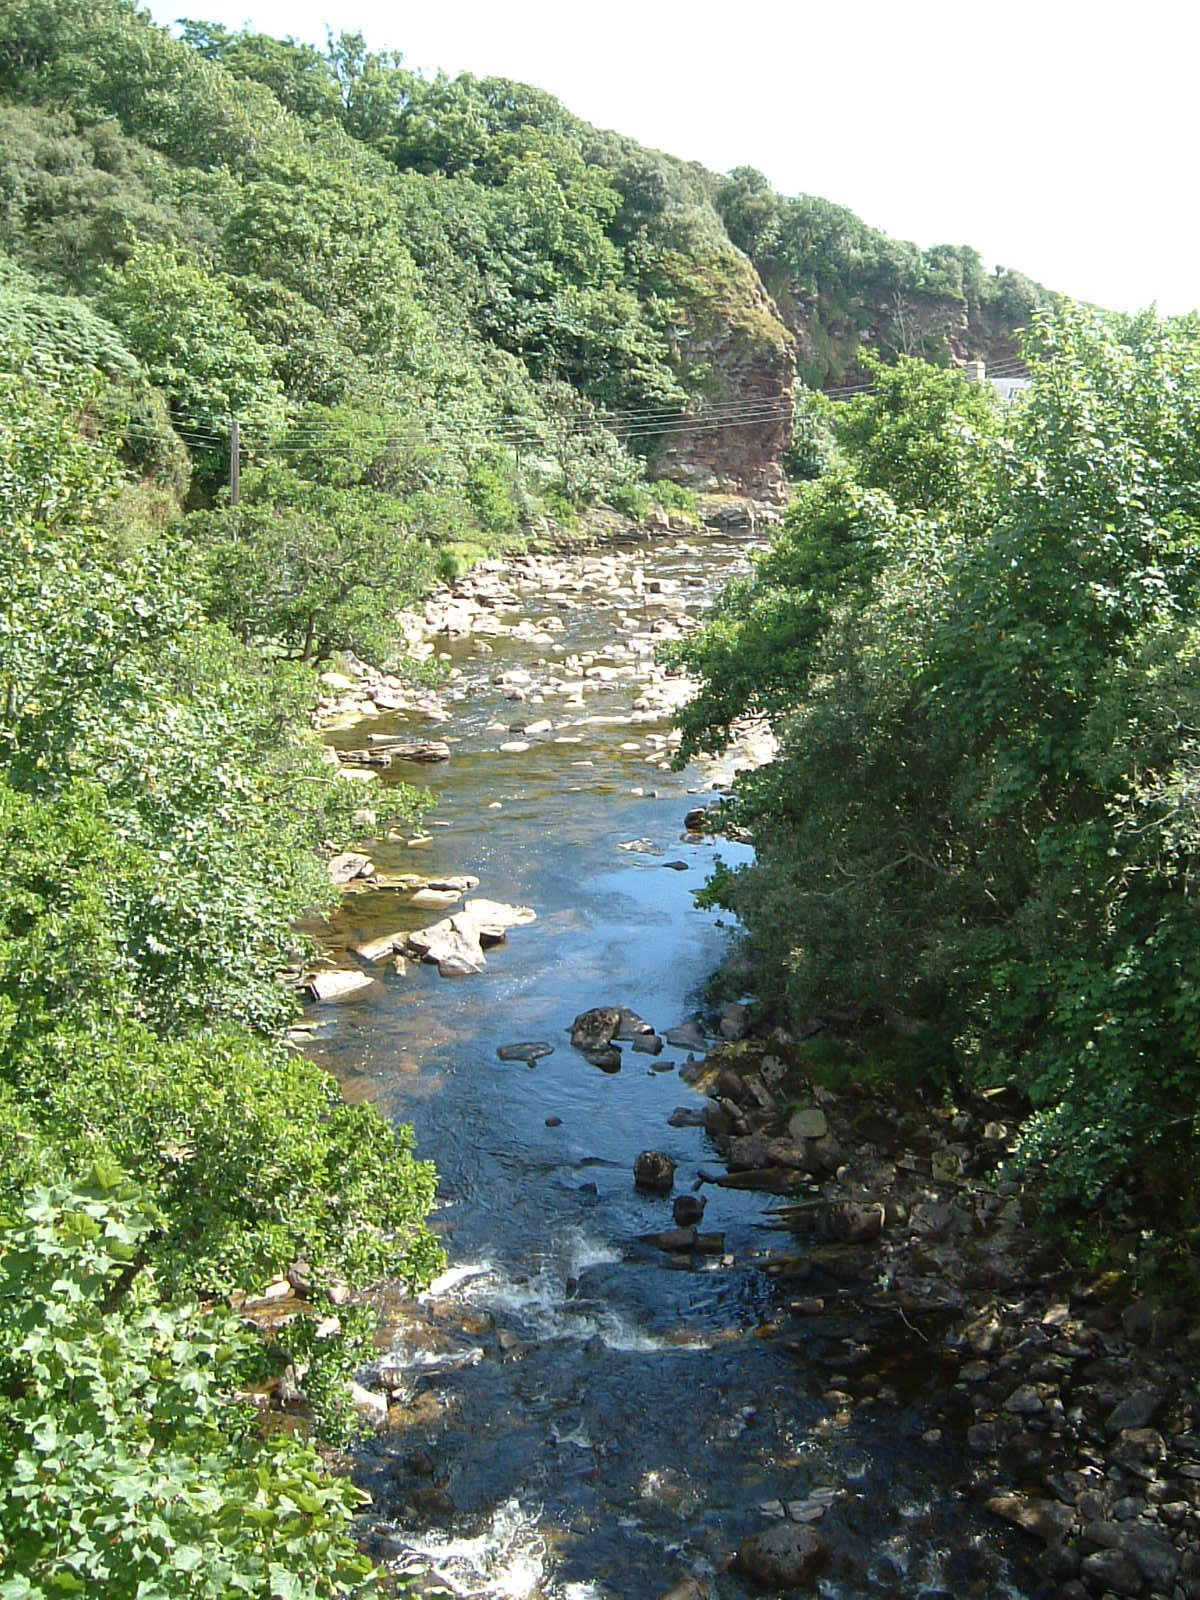 The river in Berriedale